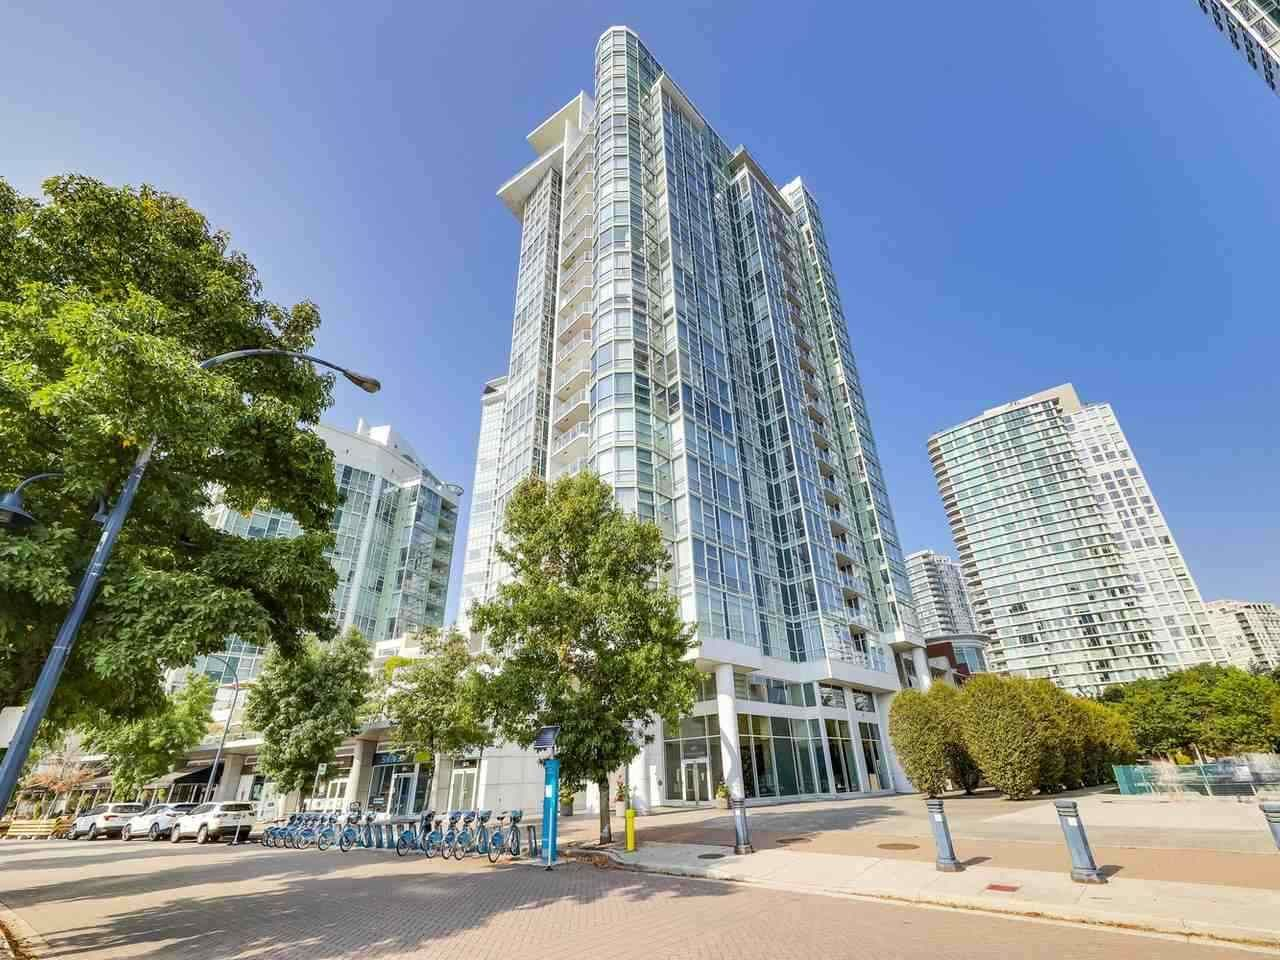 """Main Photo: 2305 1077 MARINASIDE Crescent in Vancouver: Yaletown Condo for sale in """"MARINASIDE RESORT"""" (Vancouver West)  : MLS®# R2544520"""